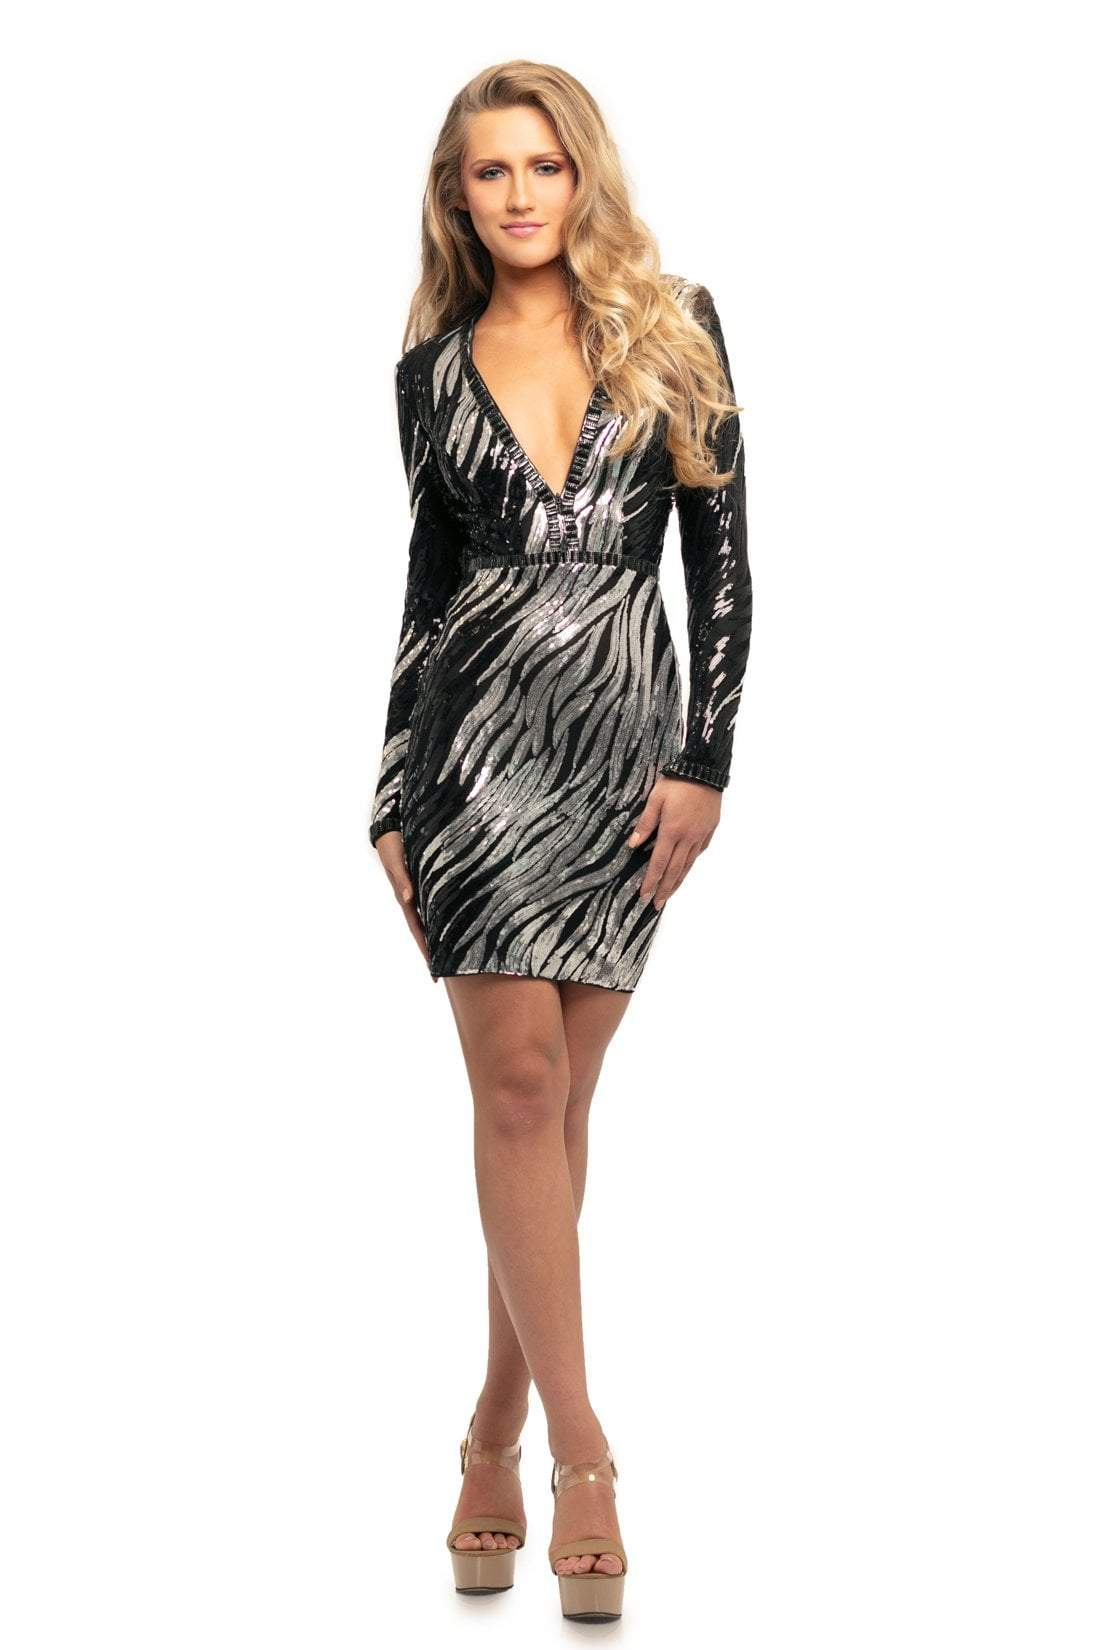 Johnathan Kayne - 9254 Sequined Zebra Design Cocktail Dress In Black and Silver